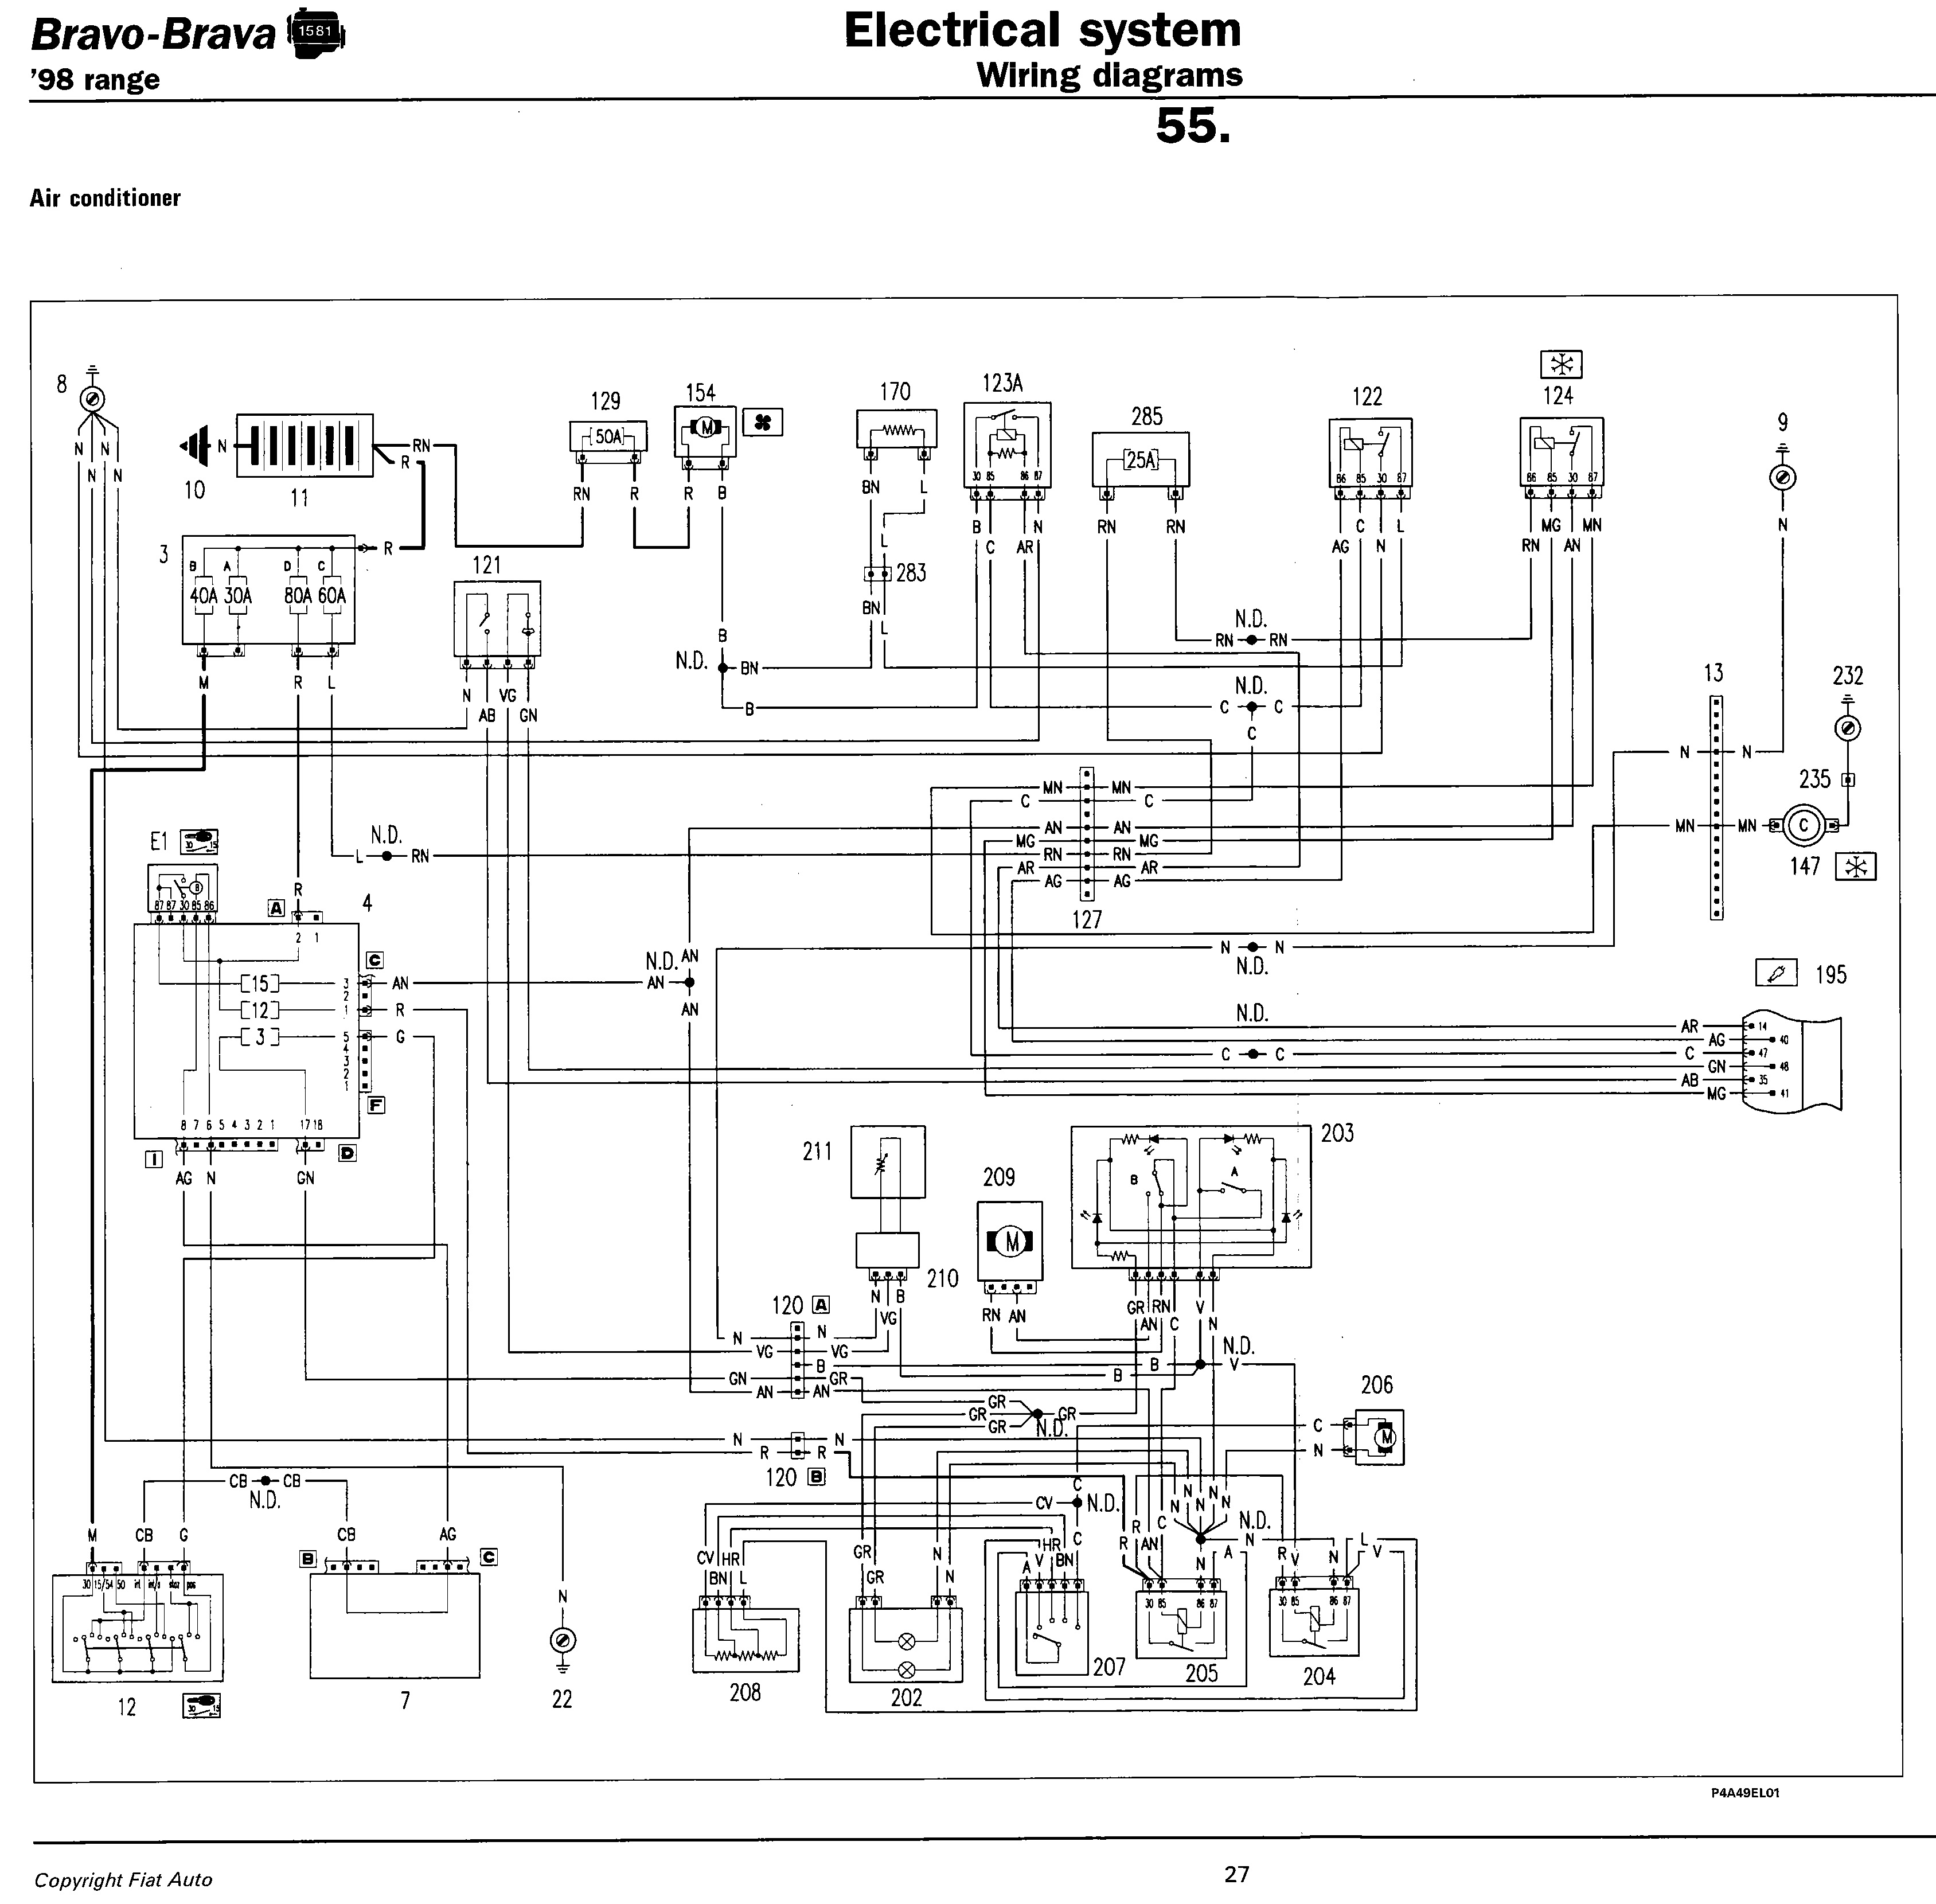 Fiat Punto Starter Motor Wiring Diagram Schematic 2019 Doblo Engine Compartment Fuse Box And Relay Table Electric Diagrams 3 Phase Electrical Grande